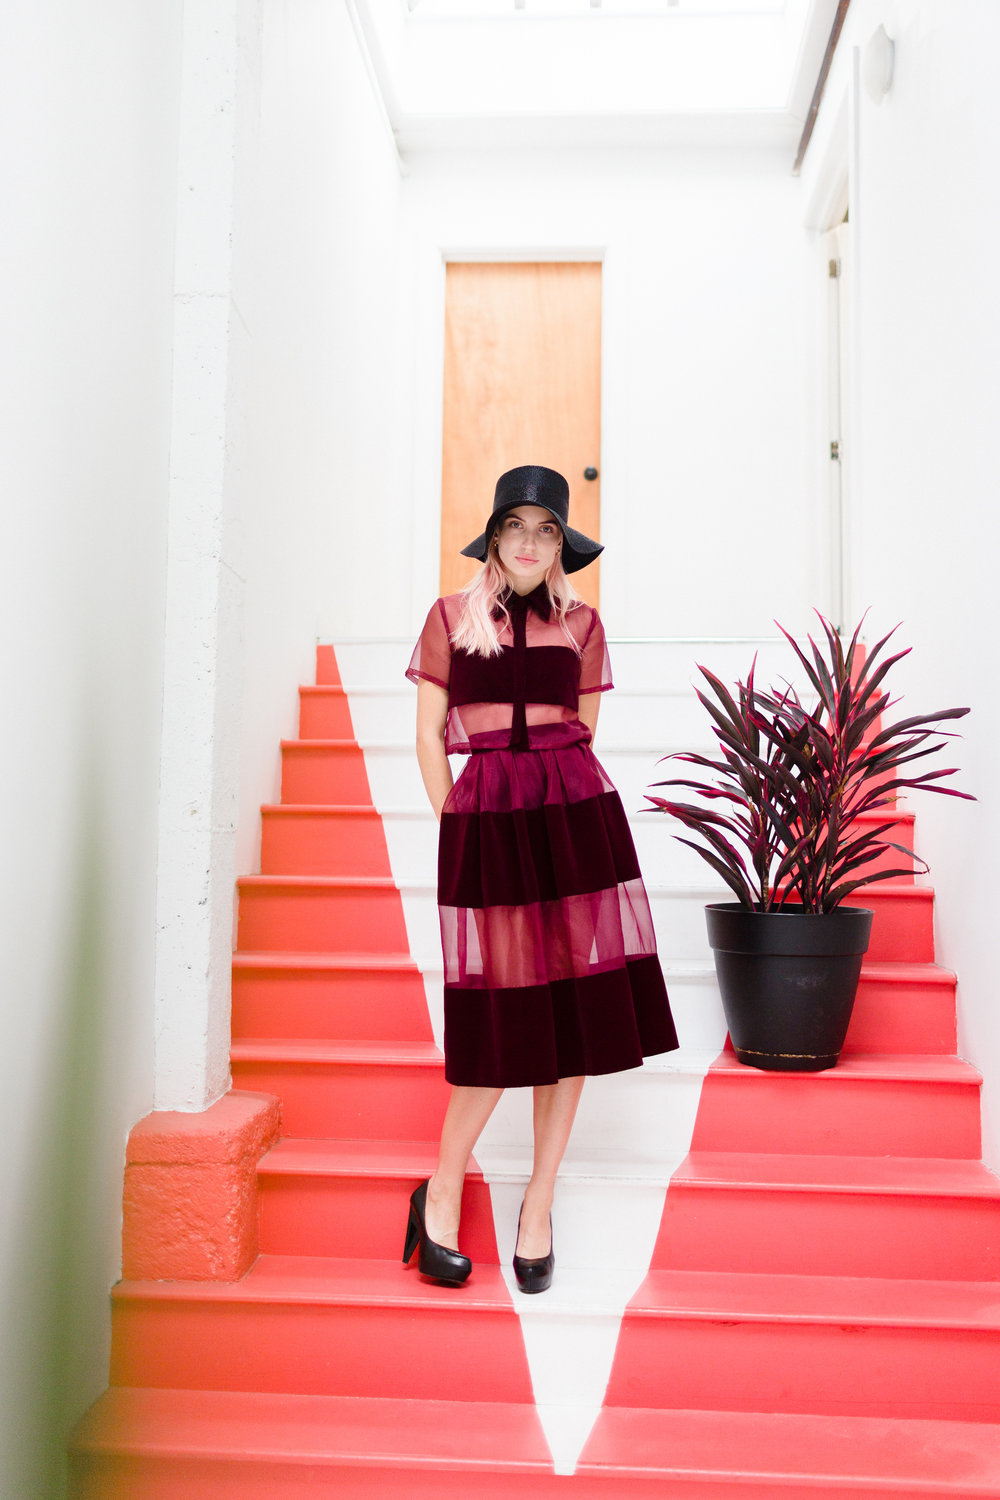 """I love the Vivian Chan Skirt and Top combination because you can go from the day to night seamlessly."" - Tishka"